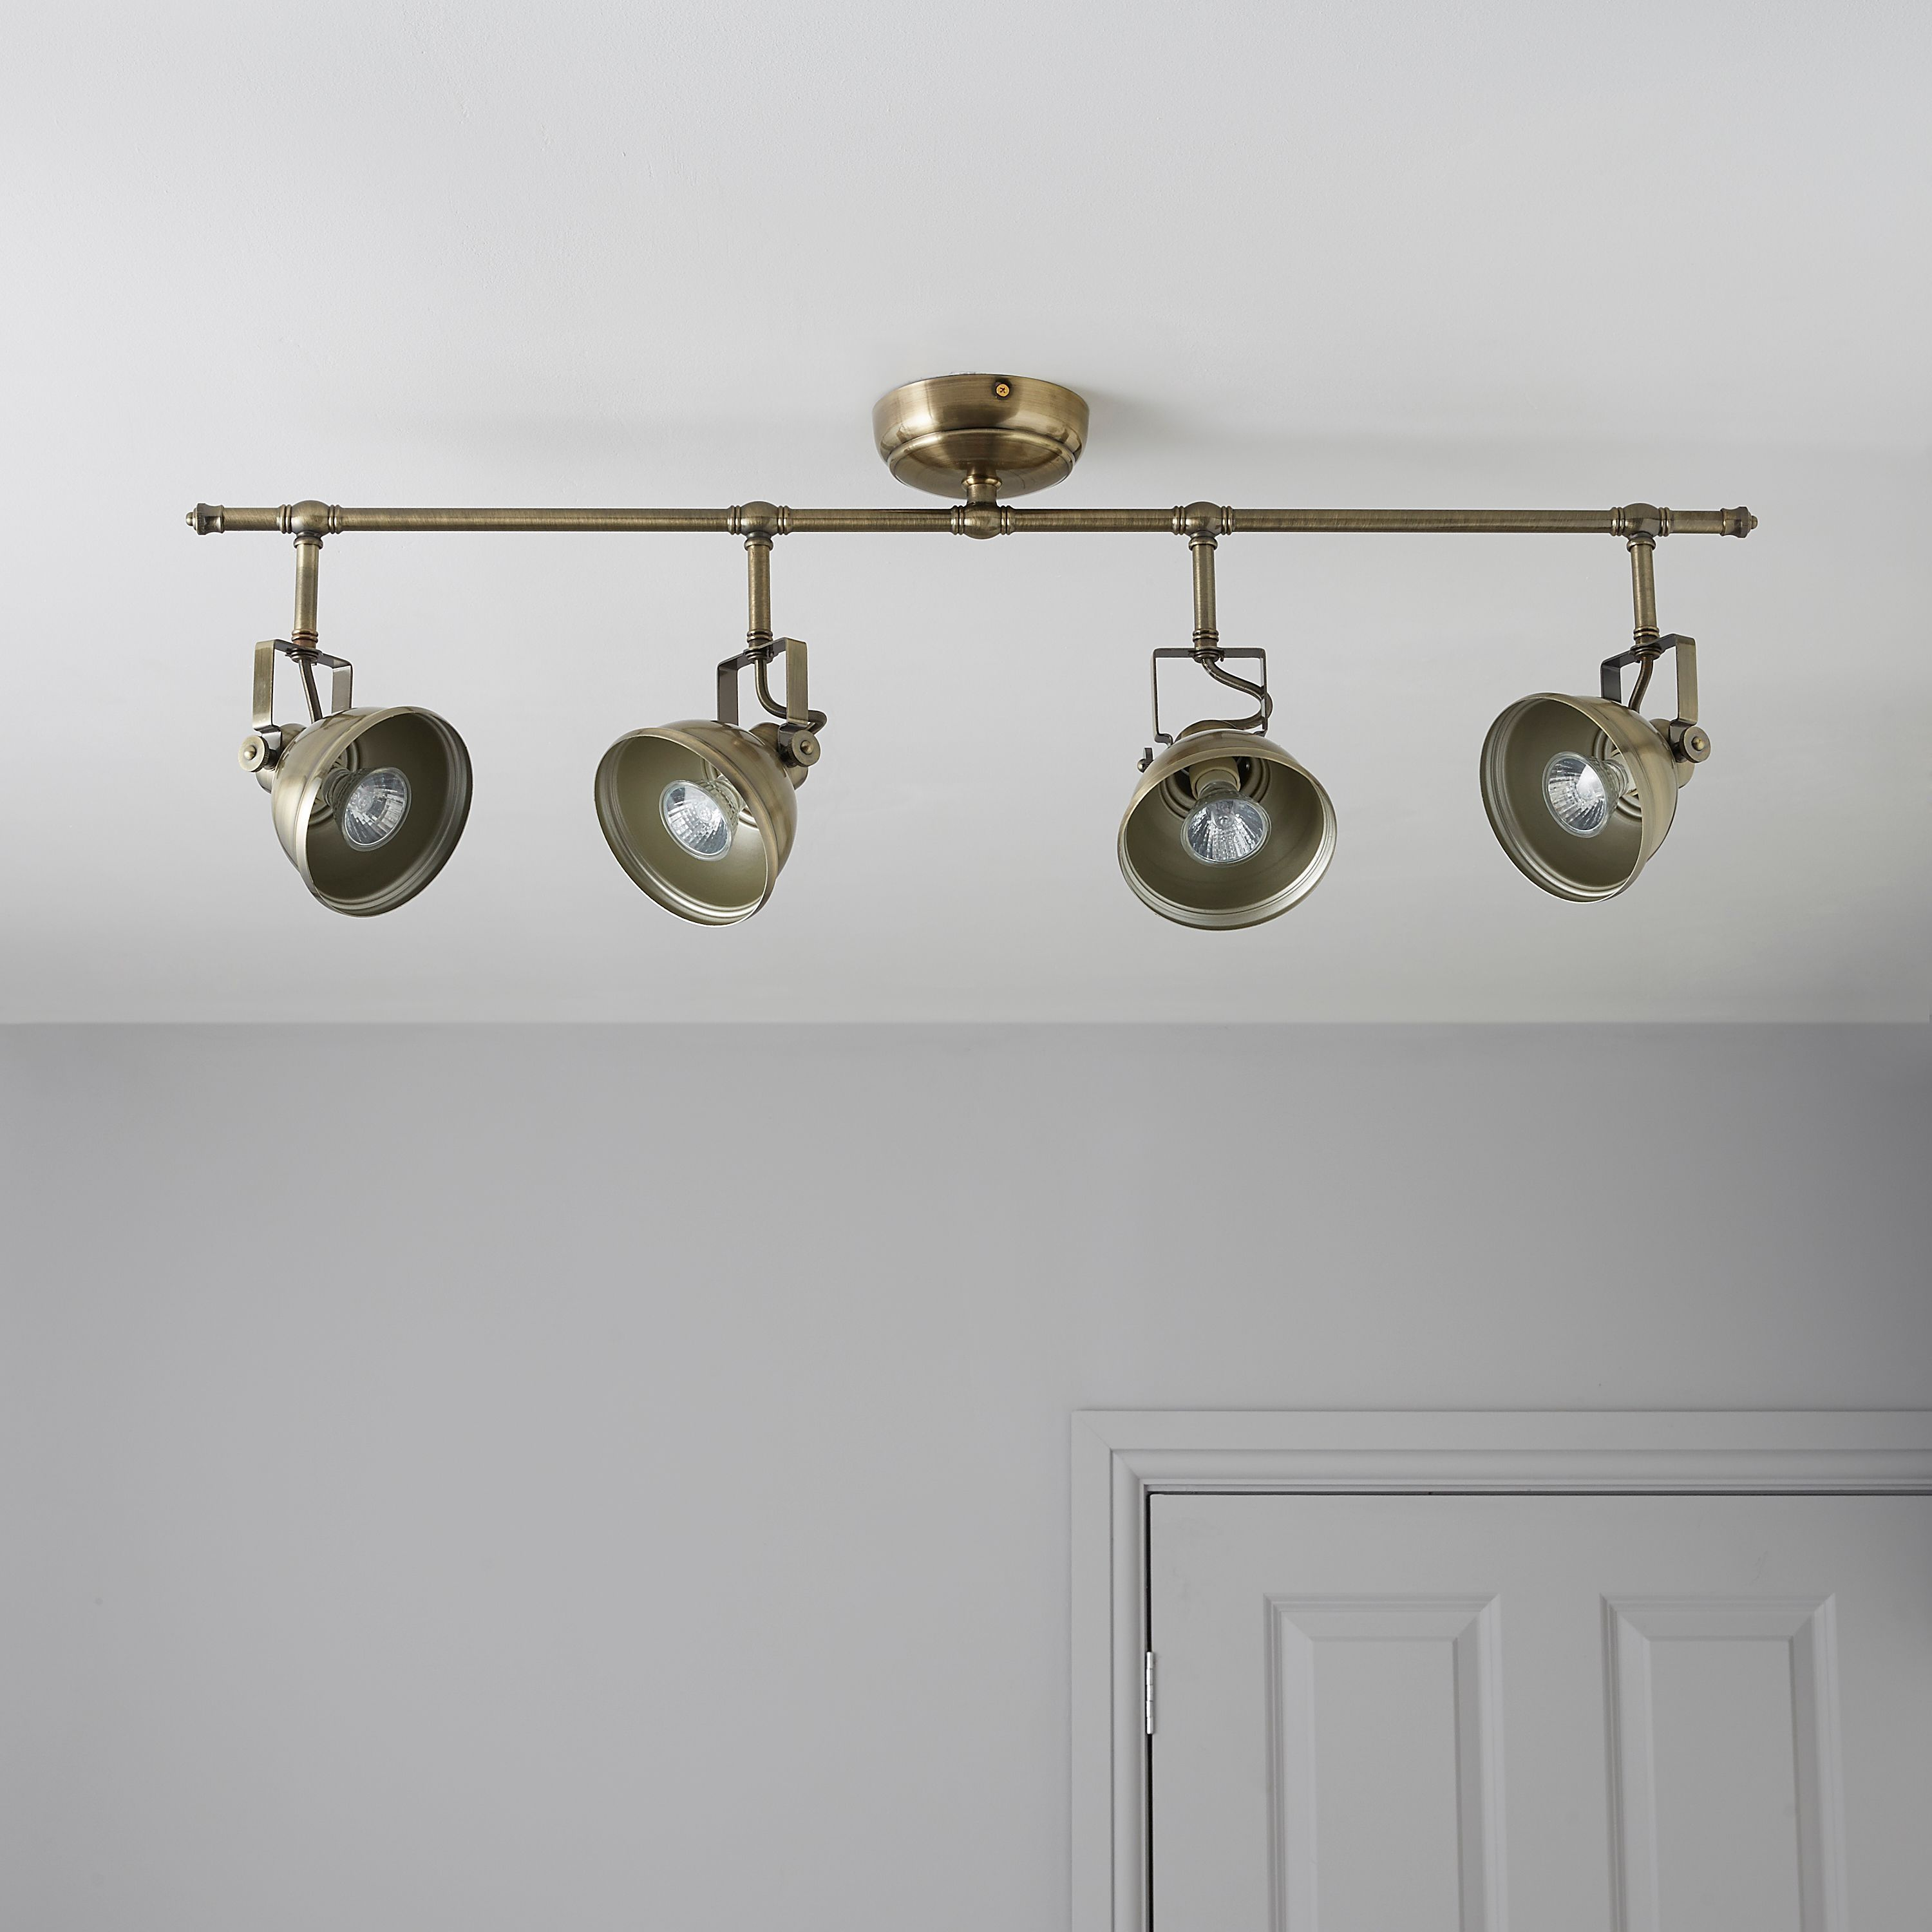 Kitchen Spot Light Bulbs Httpsinhvienthienannet Pinterest - Kitchen spot light fittings